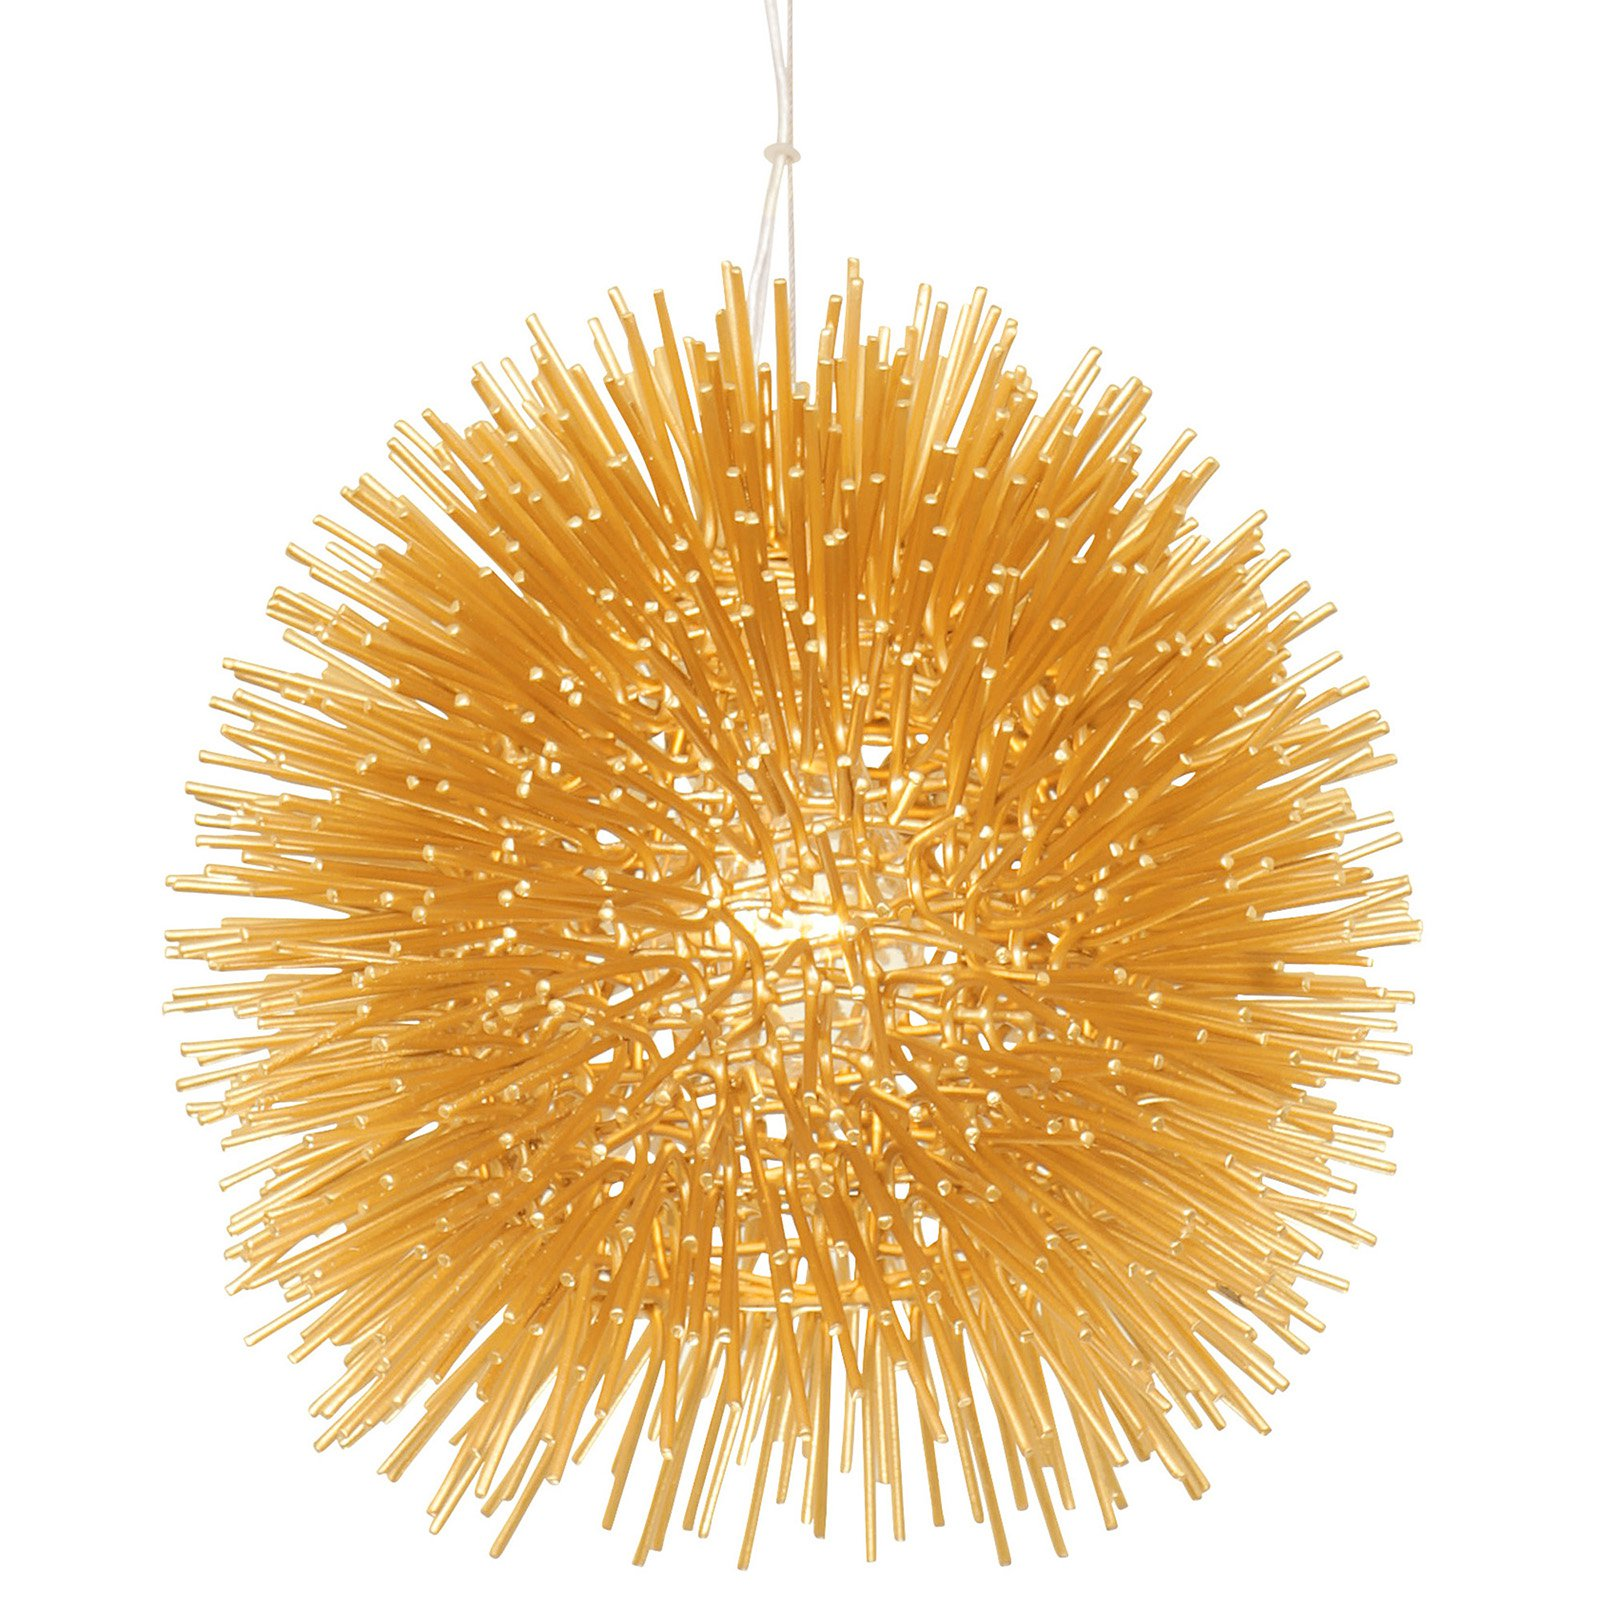 Varaluz Urchin 169M01 Mini Pendant Light